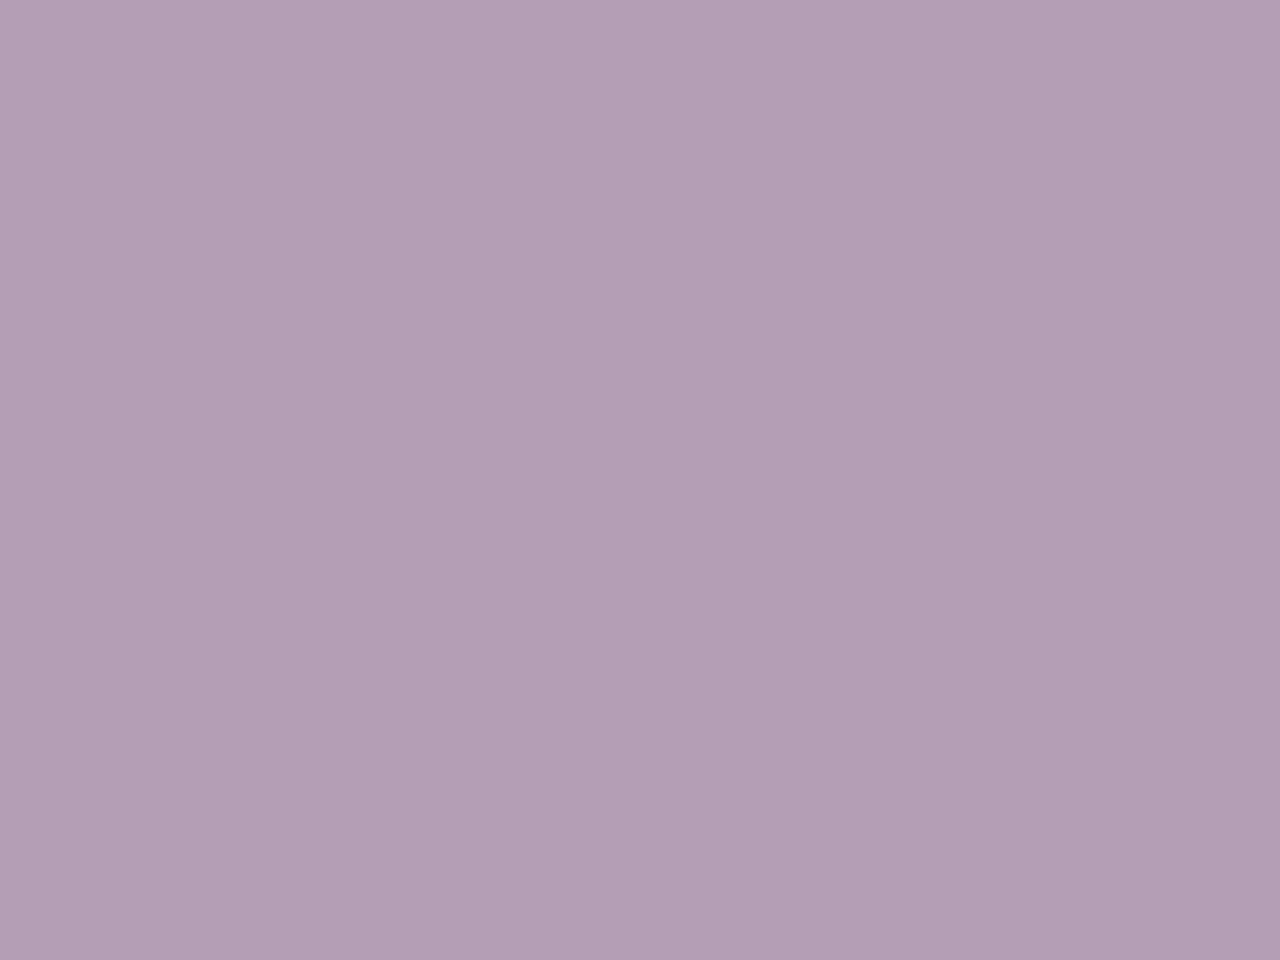 1280x960 Pastel Purple Solid Color Background